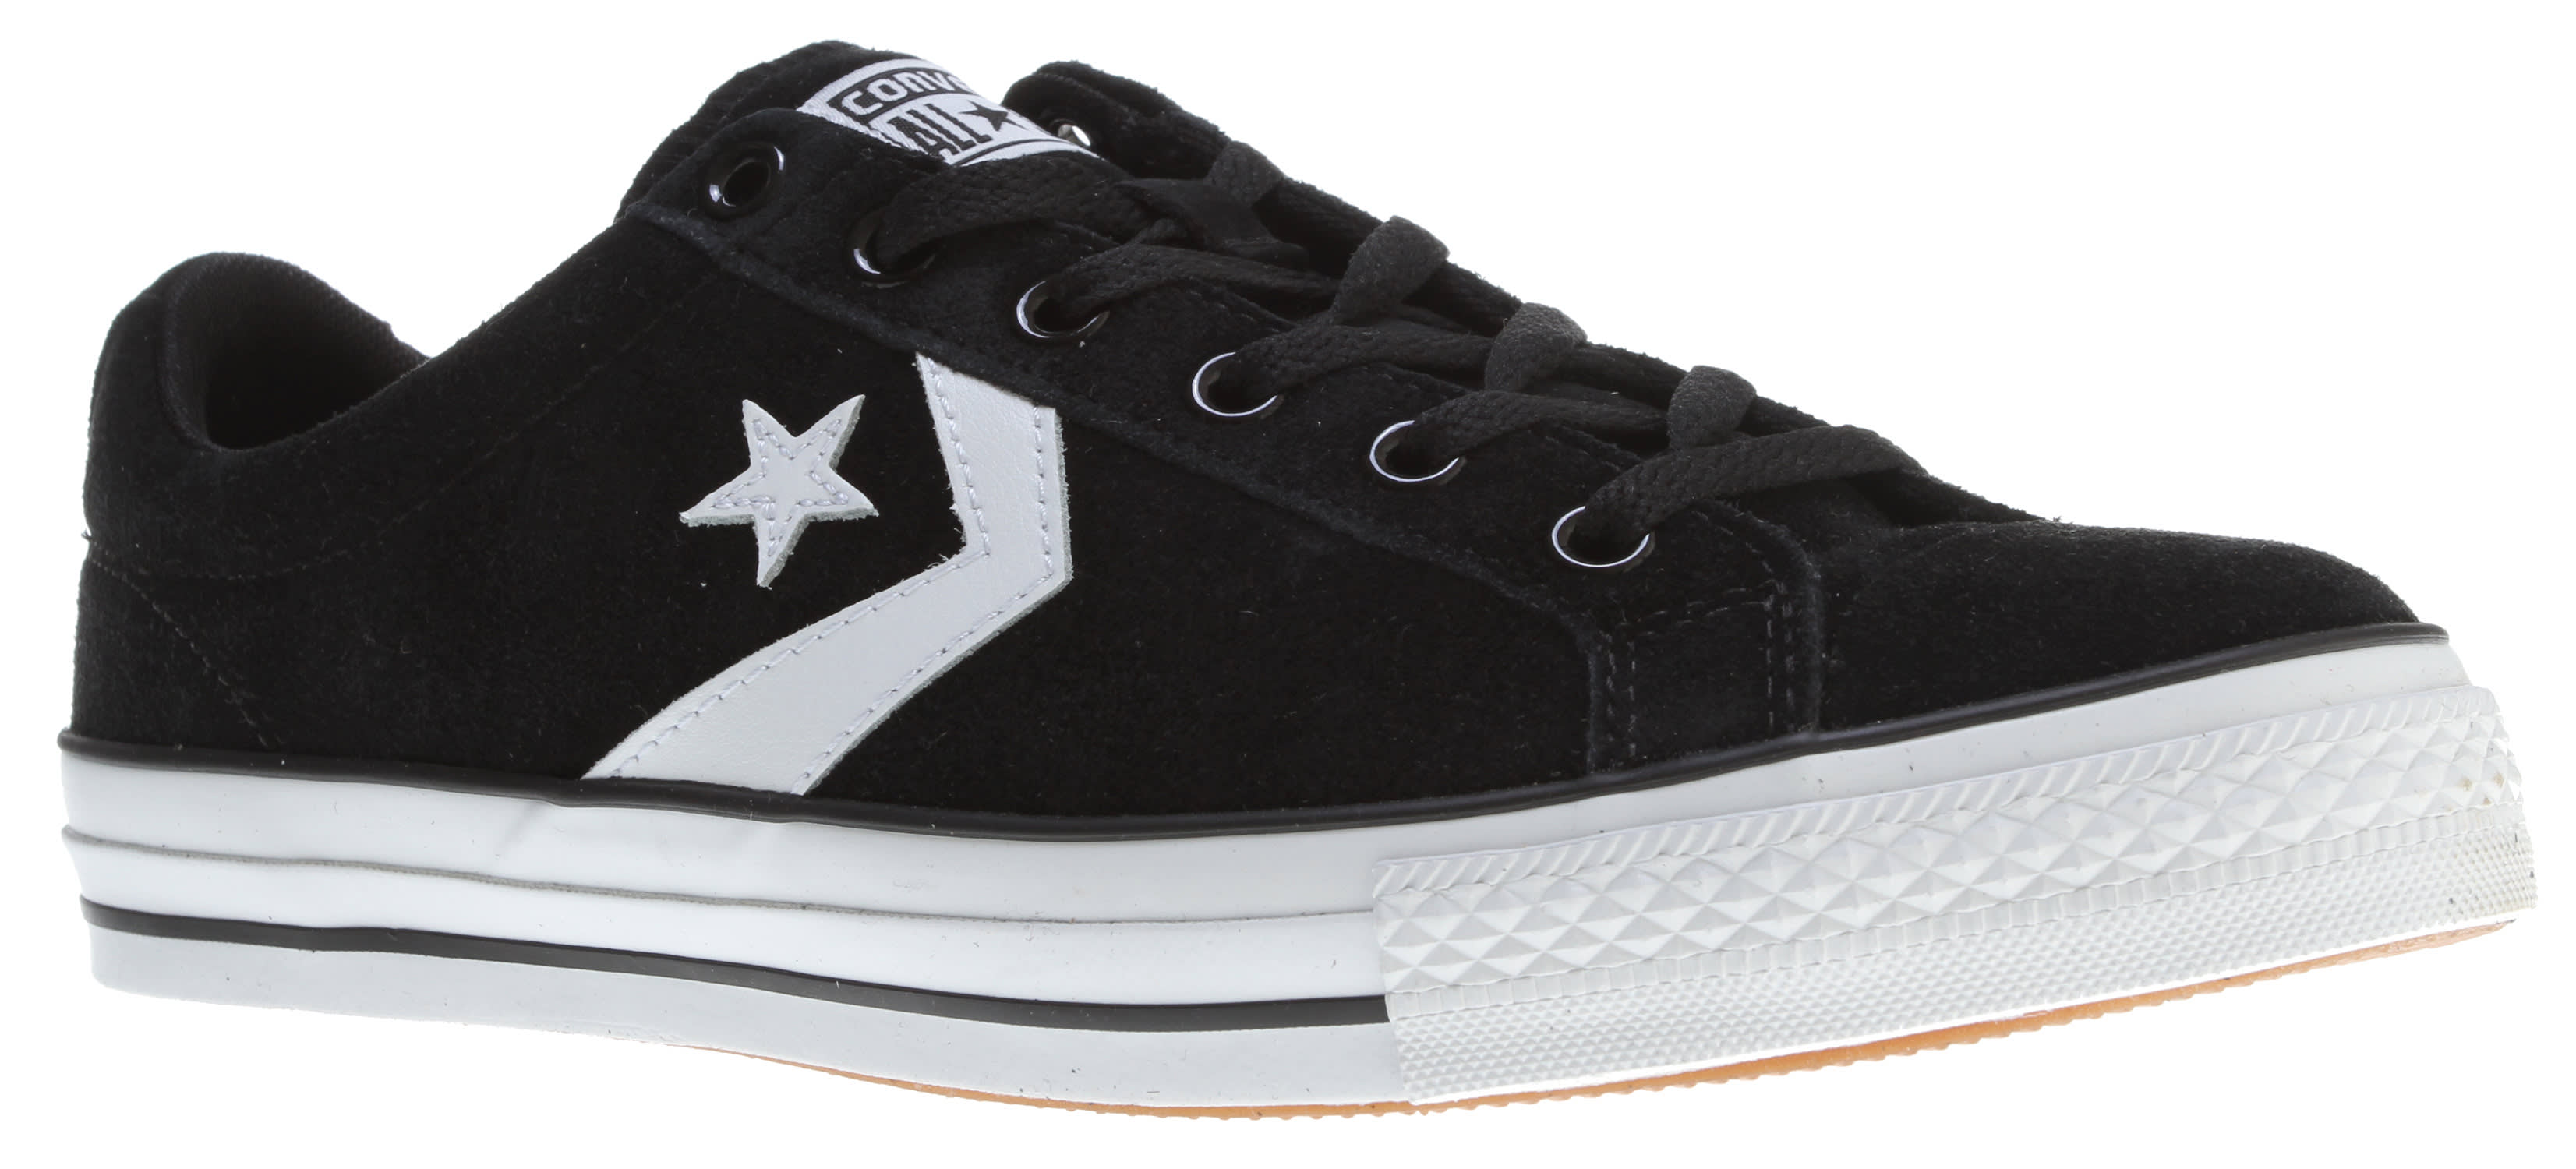 converse shoes at 49943 ballaster